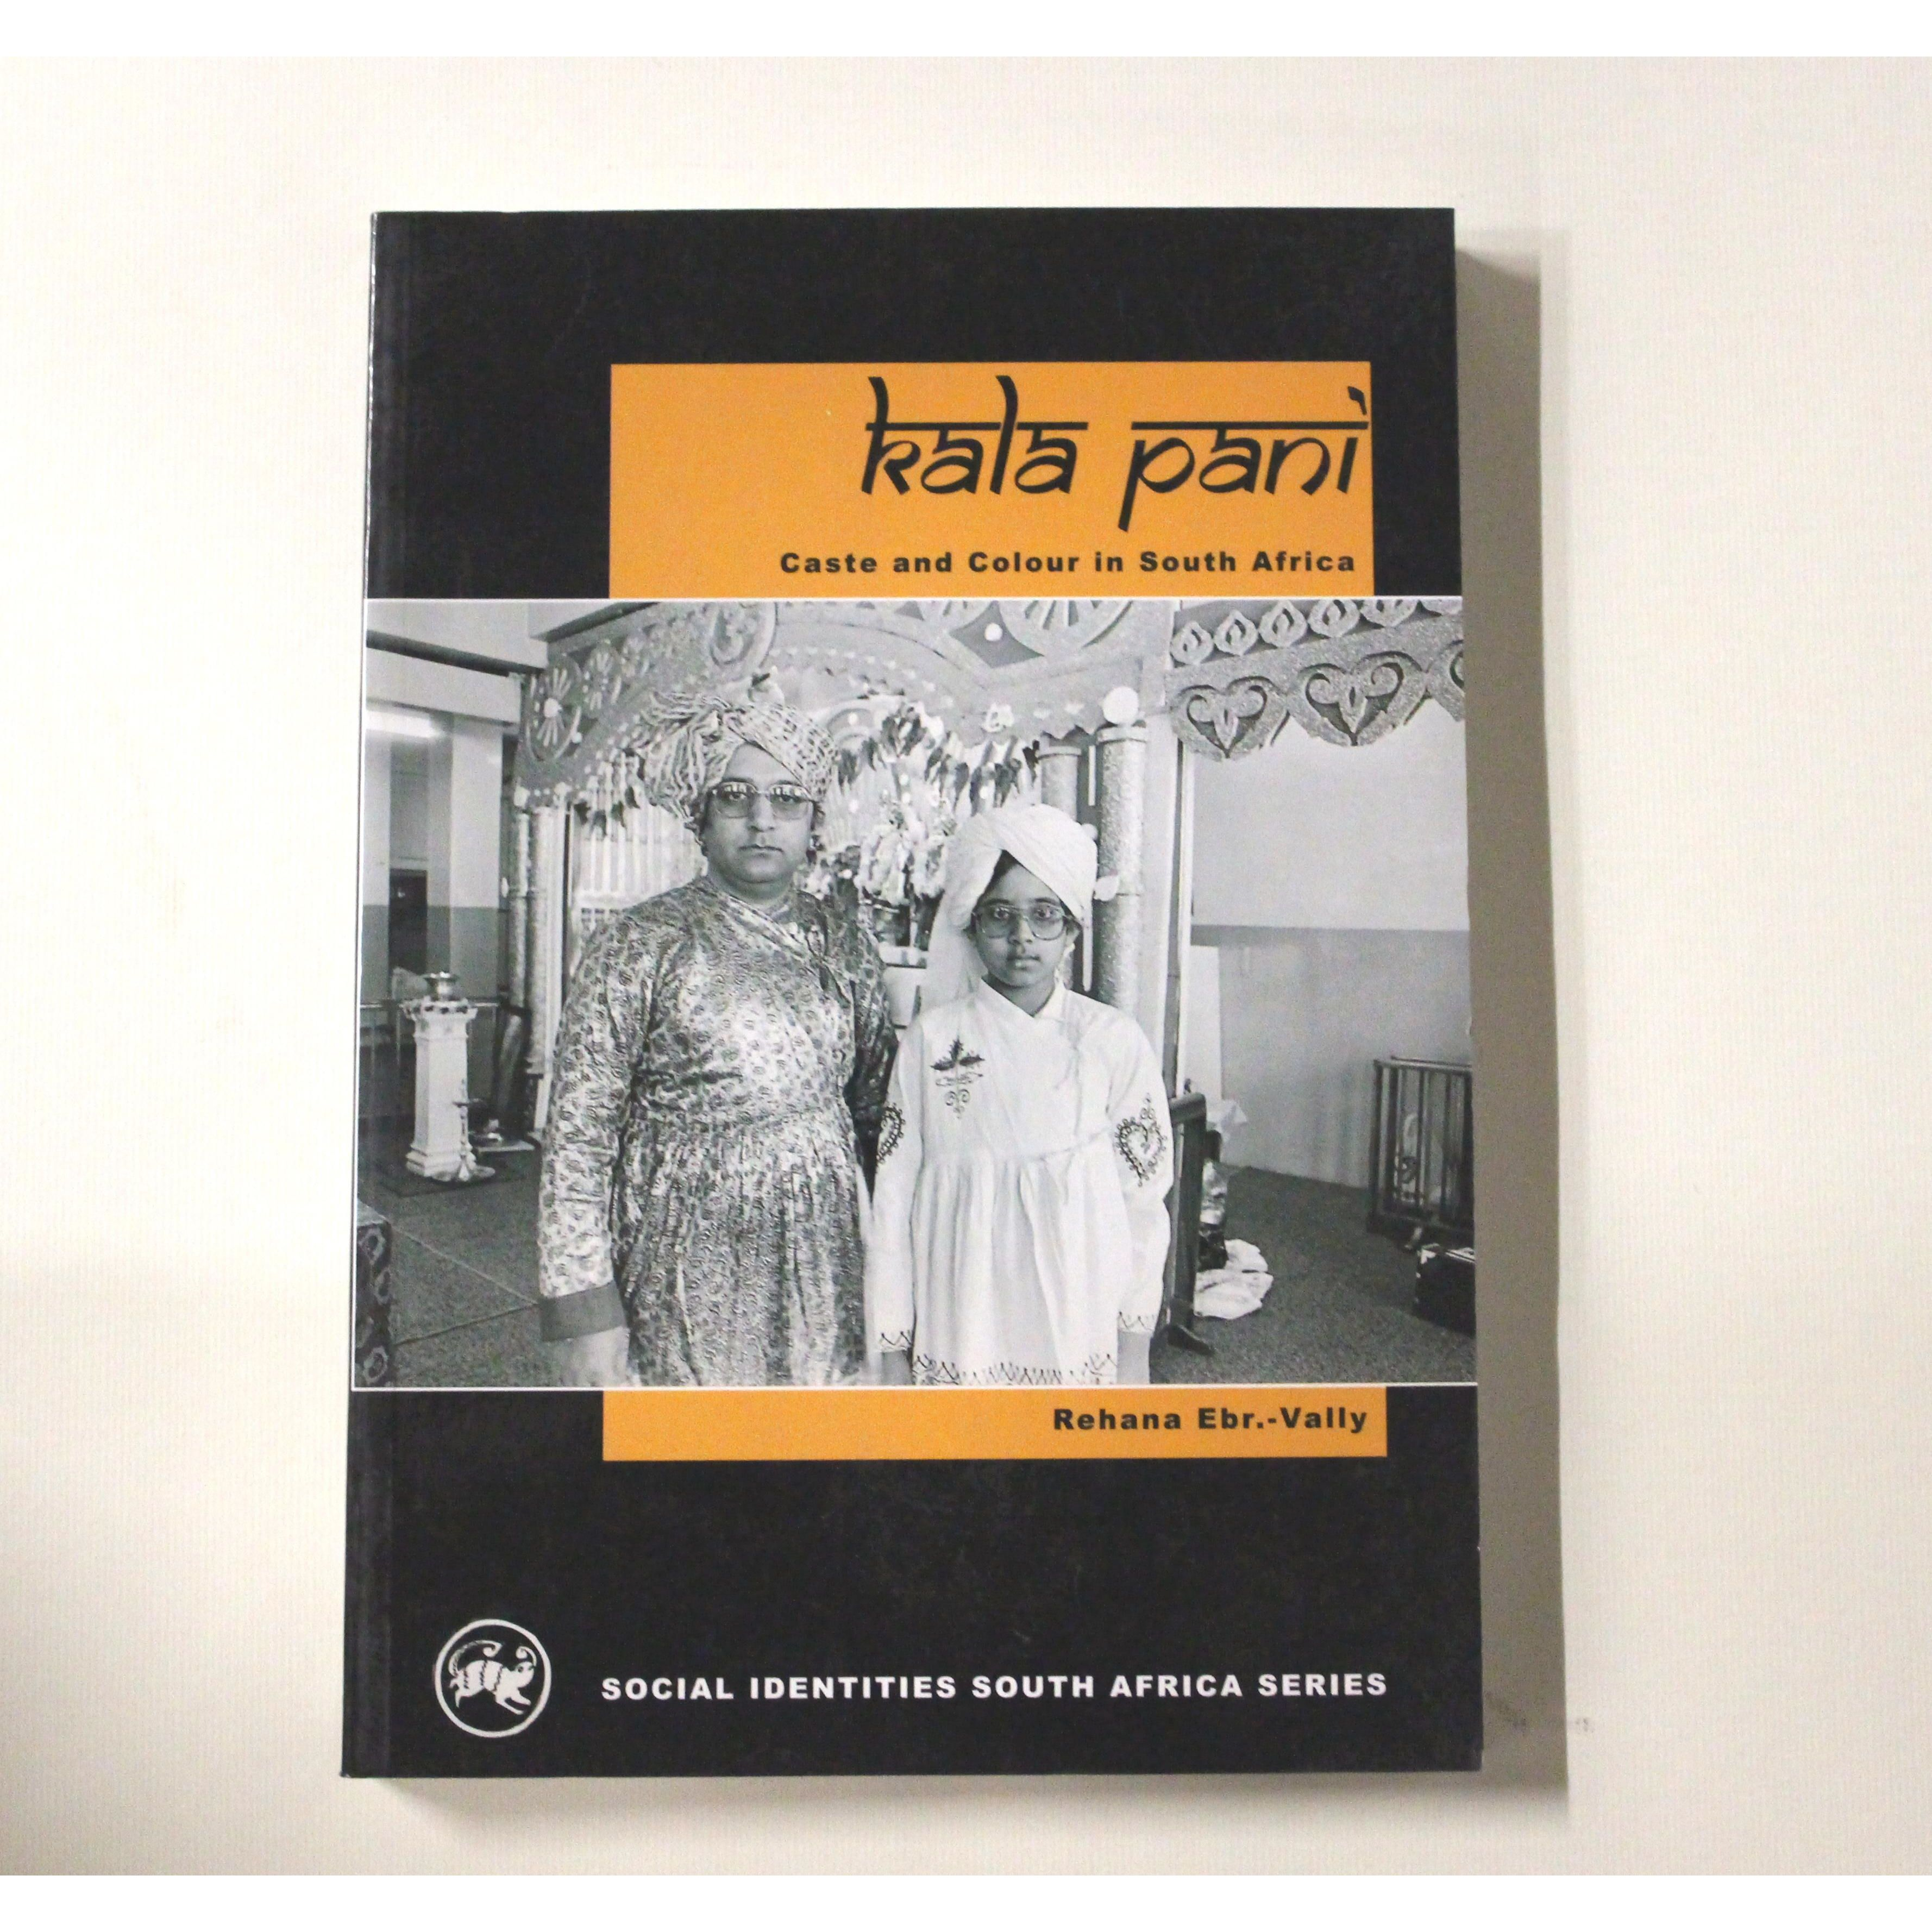 Kala Pani: Caste and Colour in South Africa